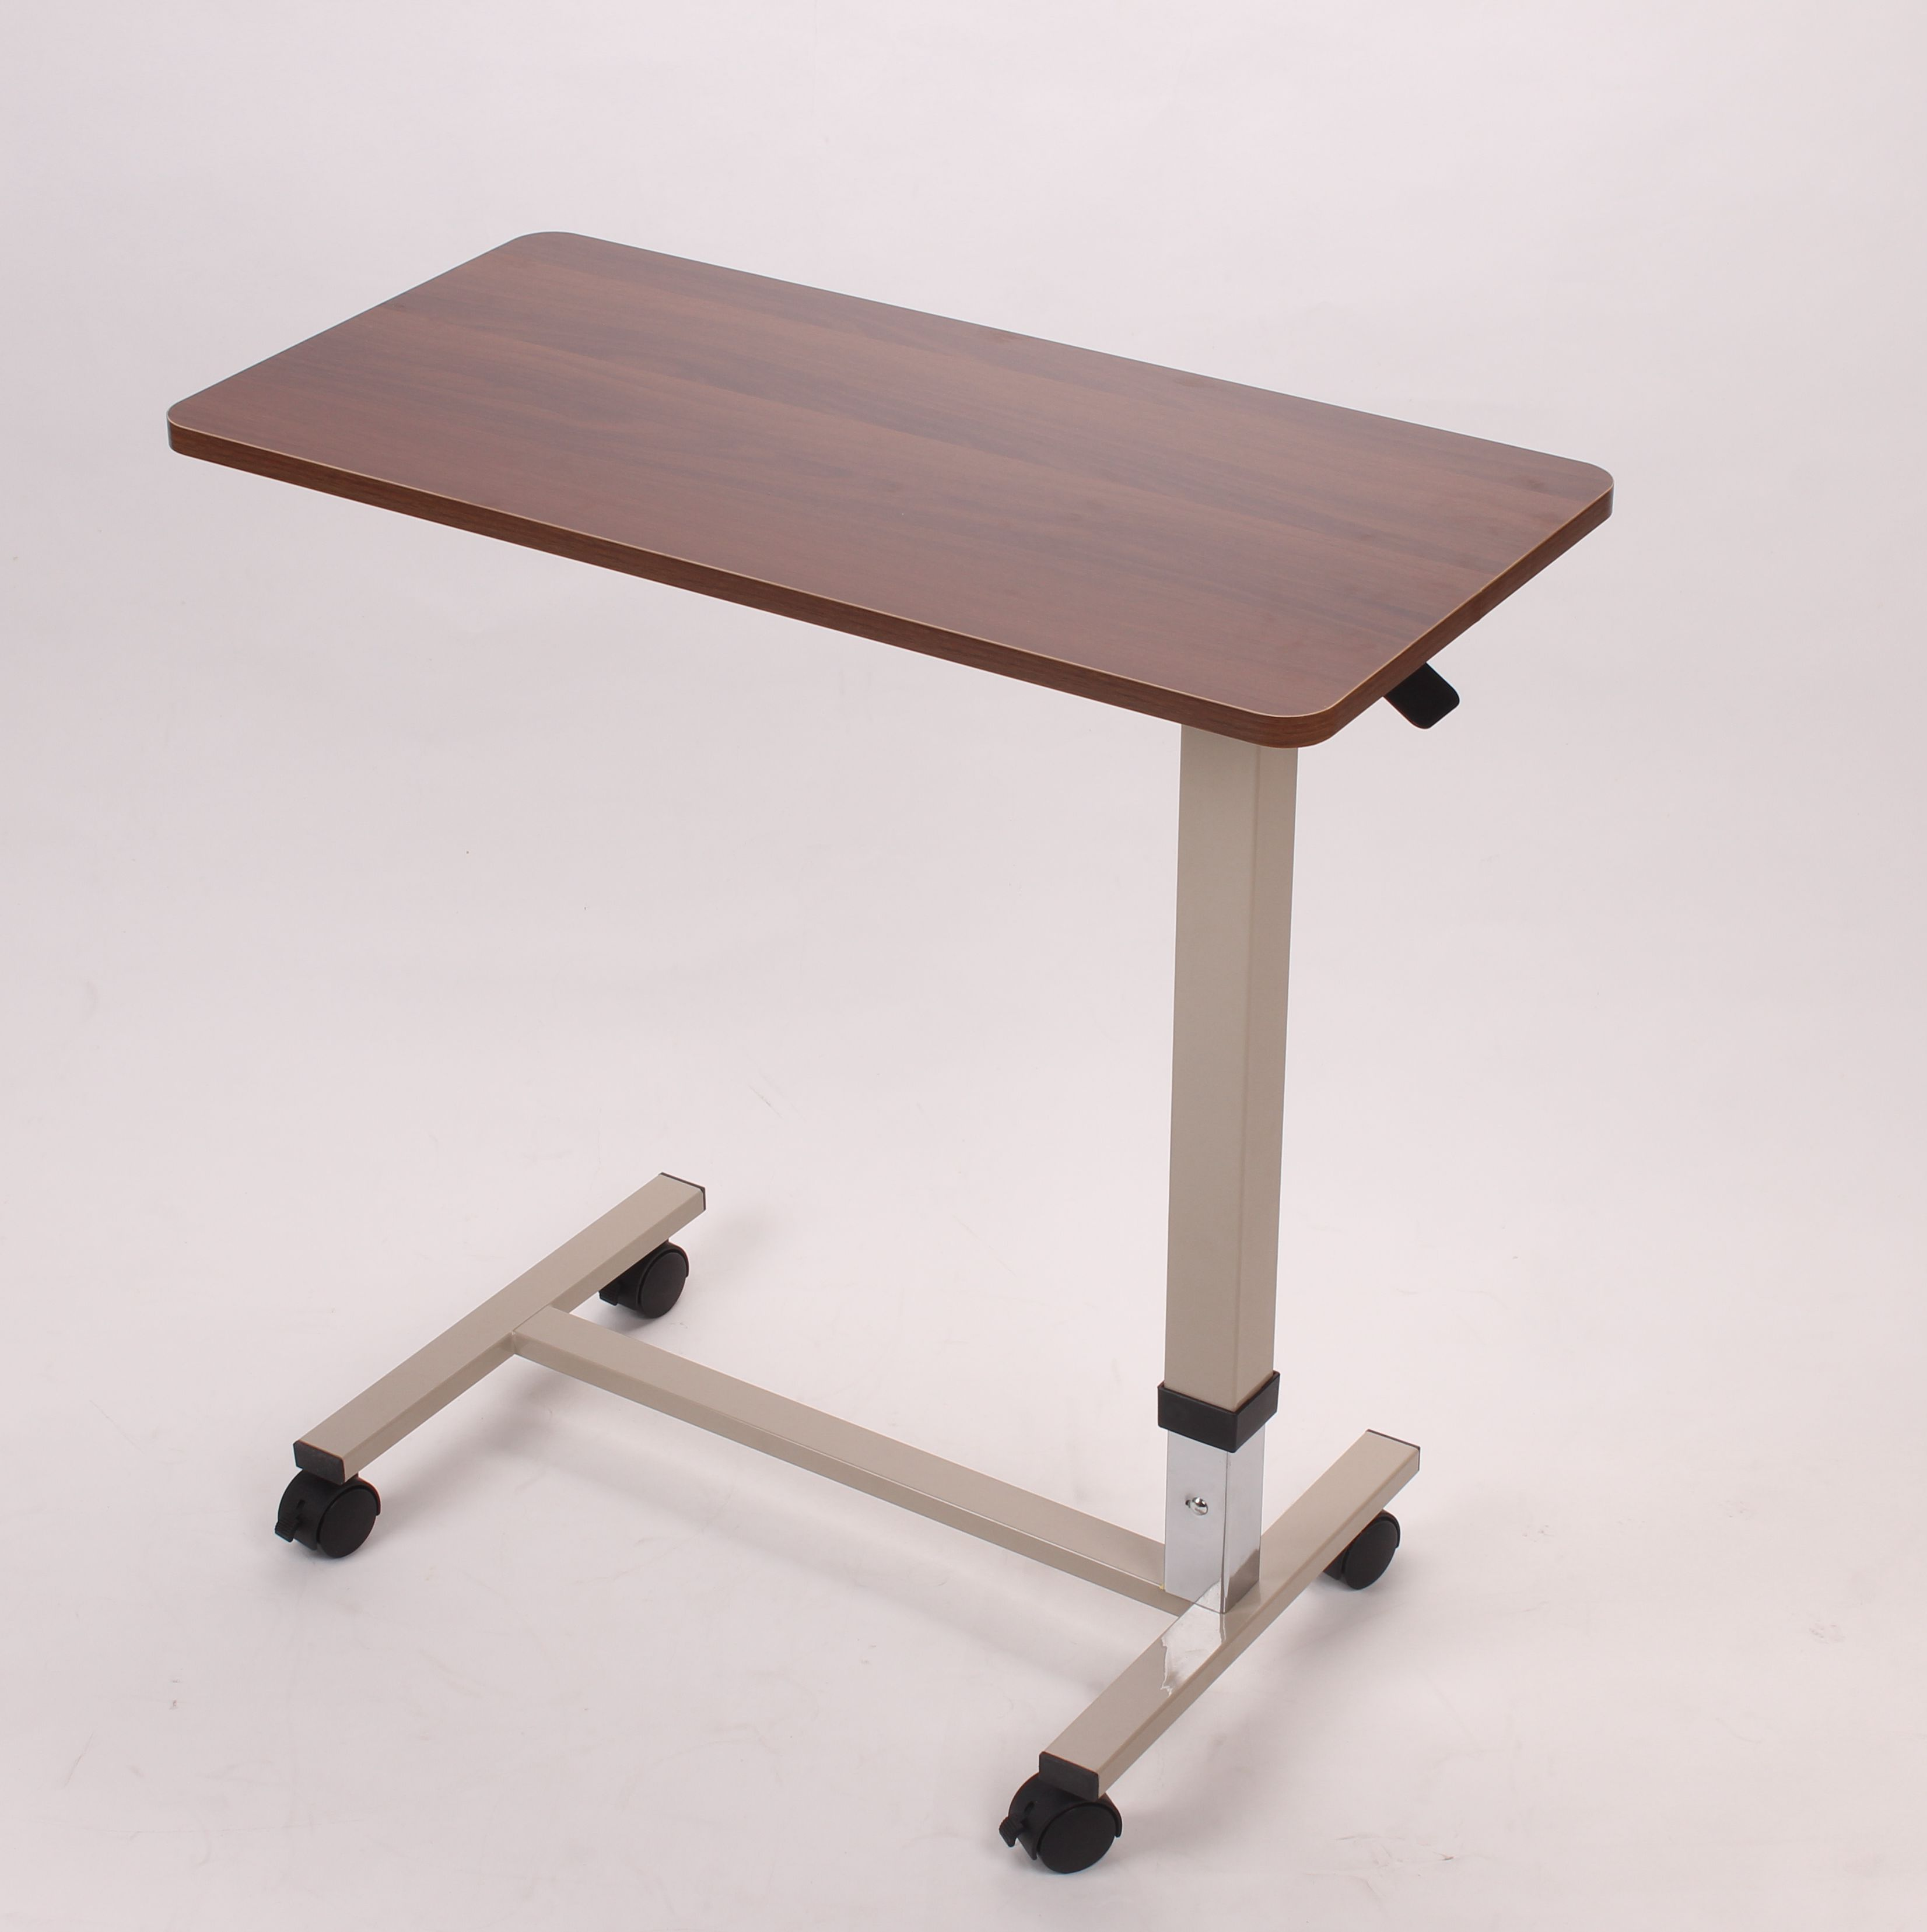 New Thickened Steel Nursing Bed Dining Table Sickbed Mobile Dining Board Can Lift Bedside Computer Table Rehabilitation Table